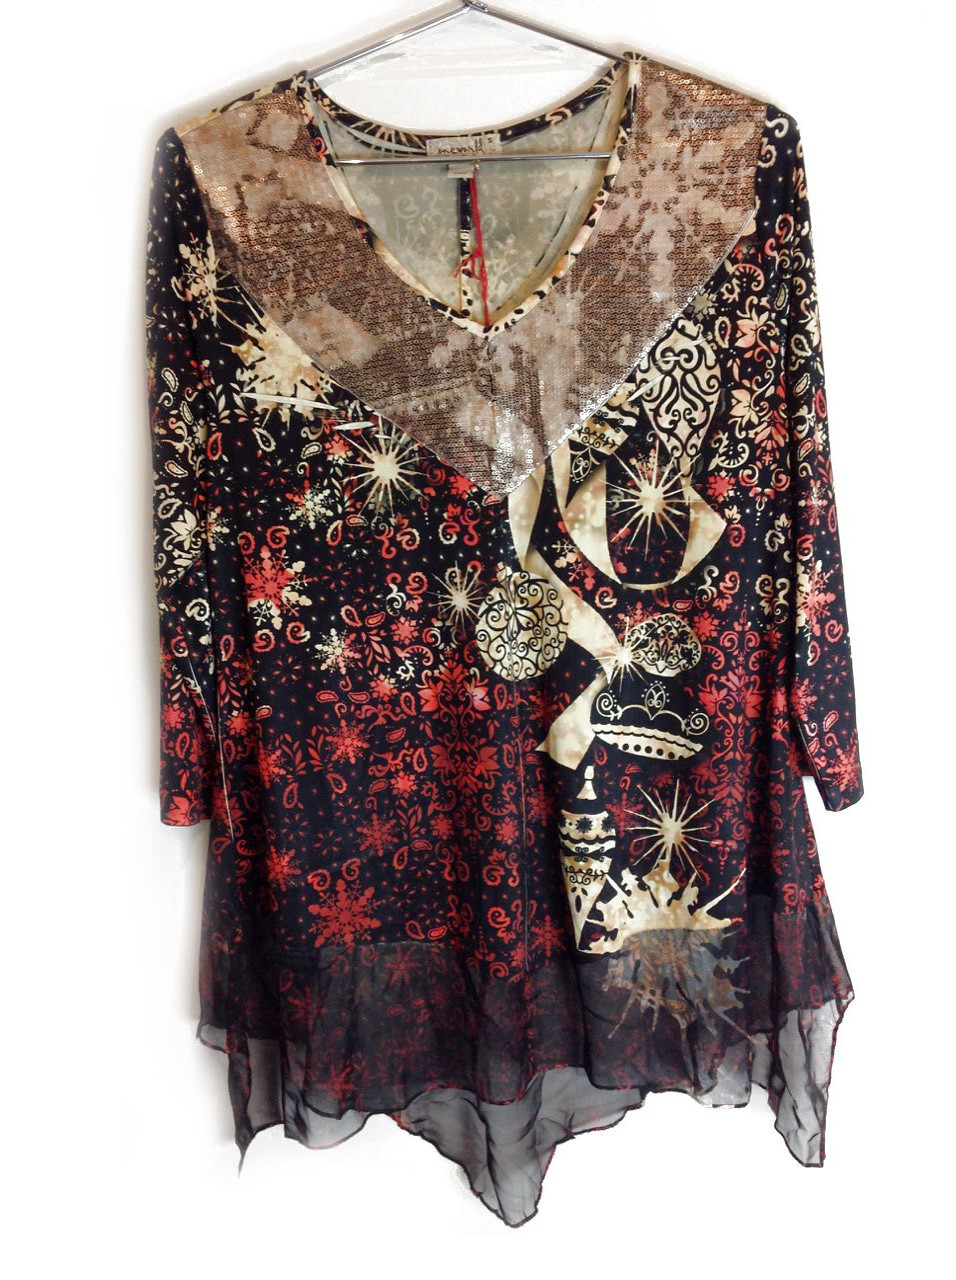 New-One-World-Womens-3-4-Sleeve-Printed-Blouse-Sequence-Tunic-Top-Plus-Size-45 thumbnail 2